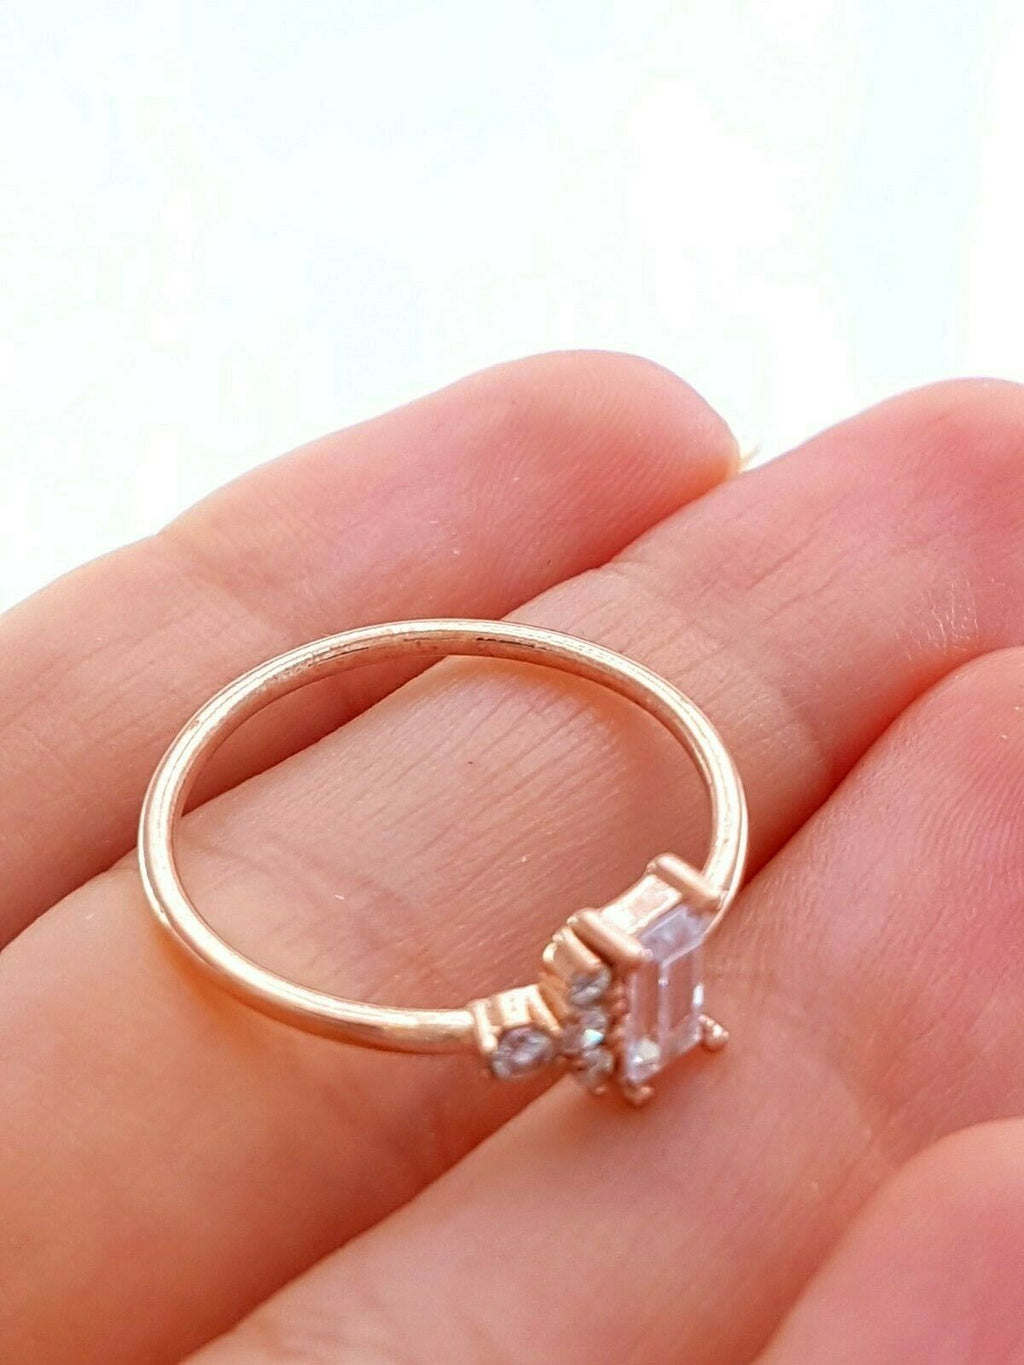 Rose Gold Stackable 2020 Baguette Mini Ring Turkish Wholesale Handmade 925 Sterling Silver Jewelry Gold Plate - Turkishsilverjewelry